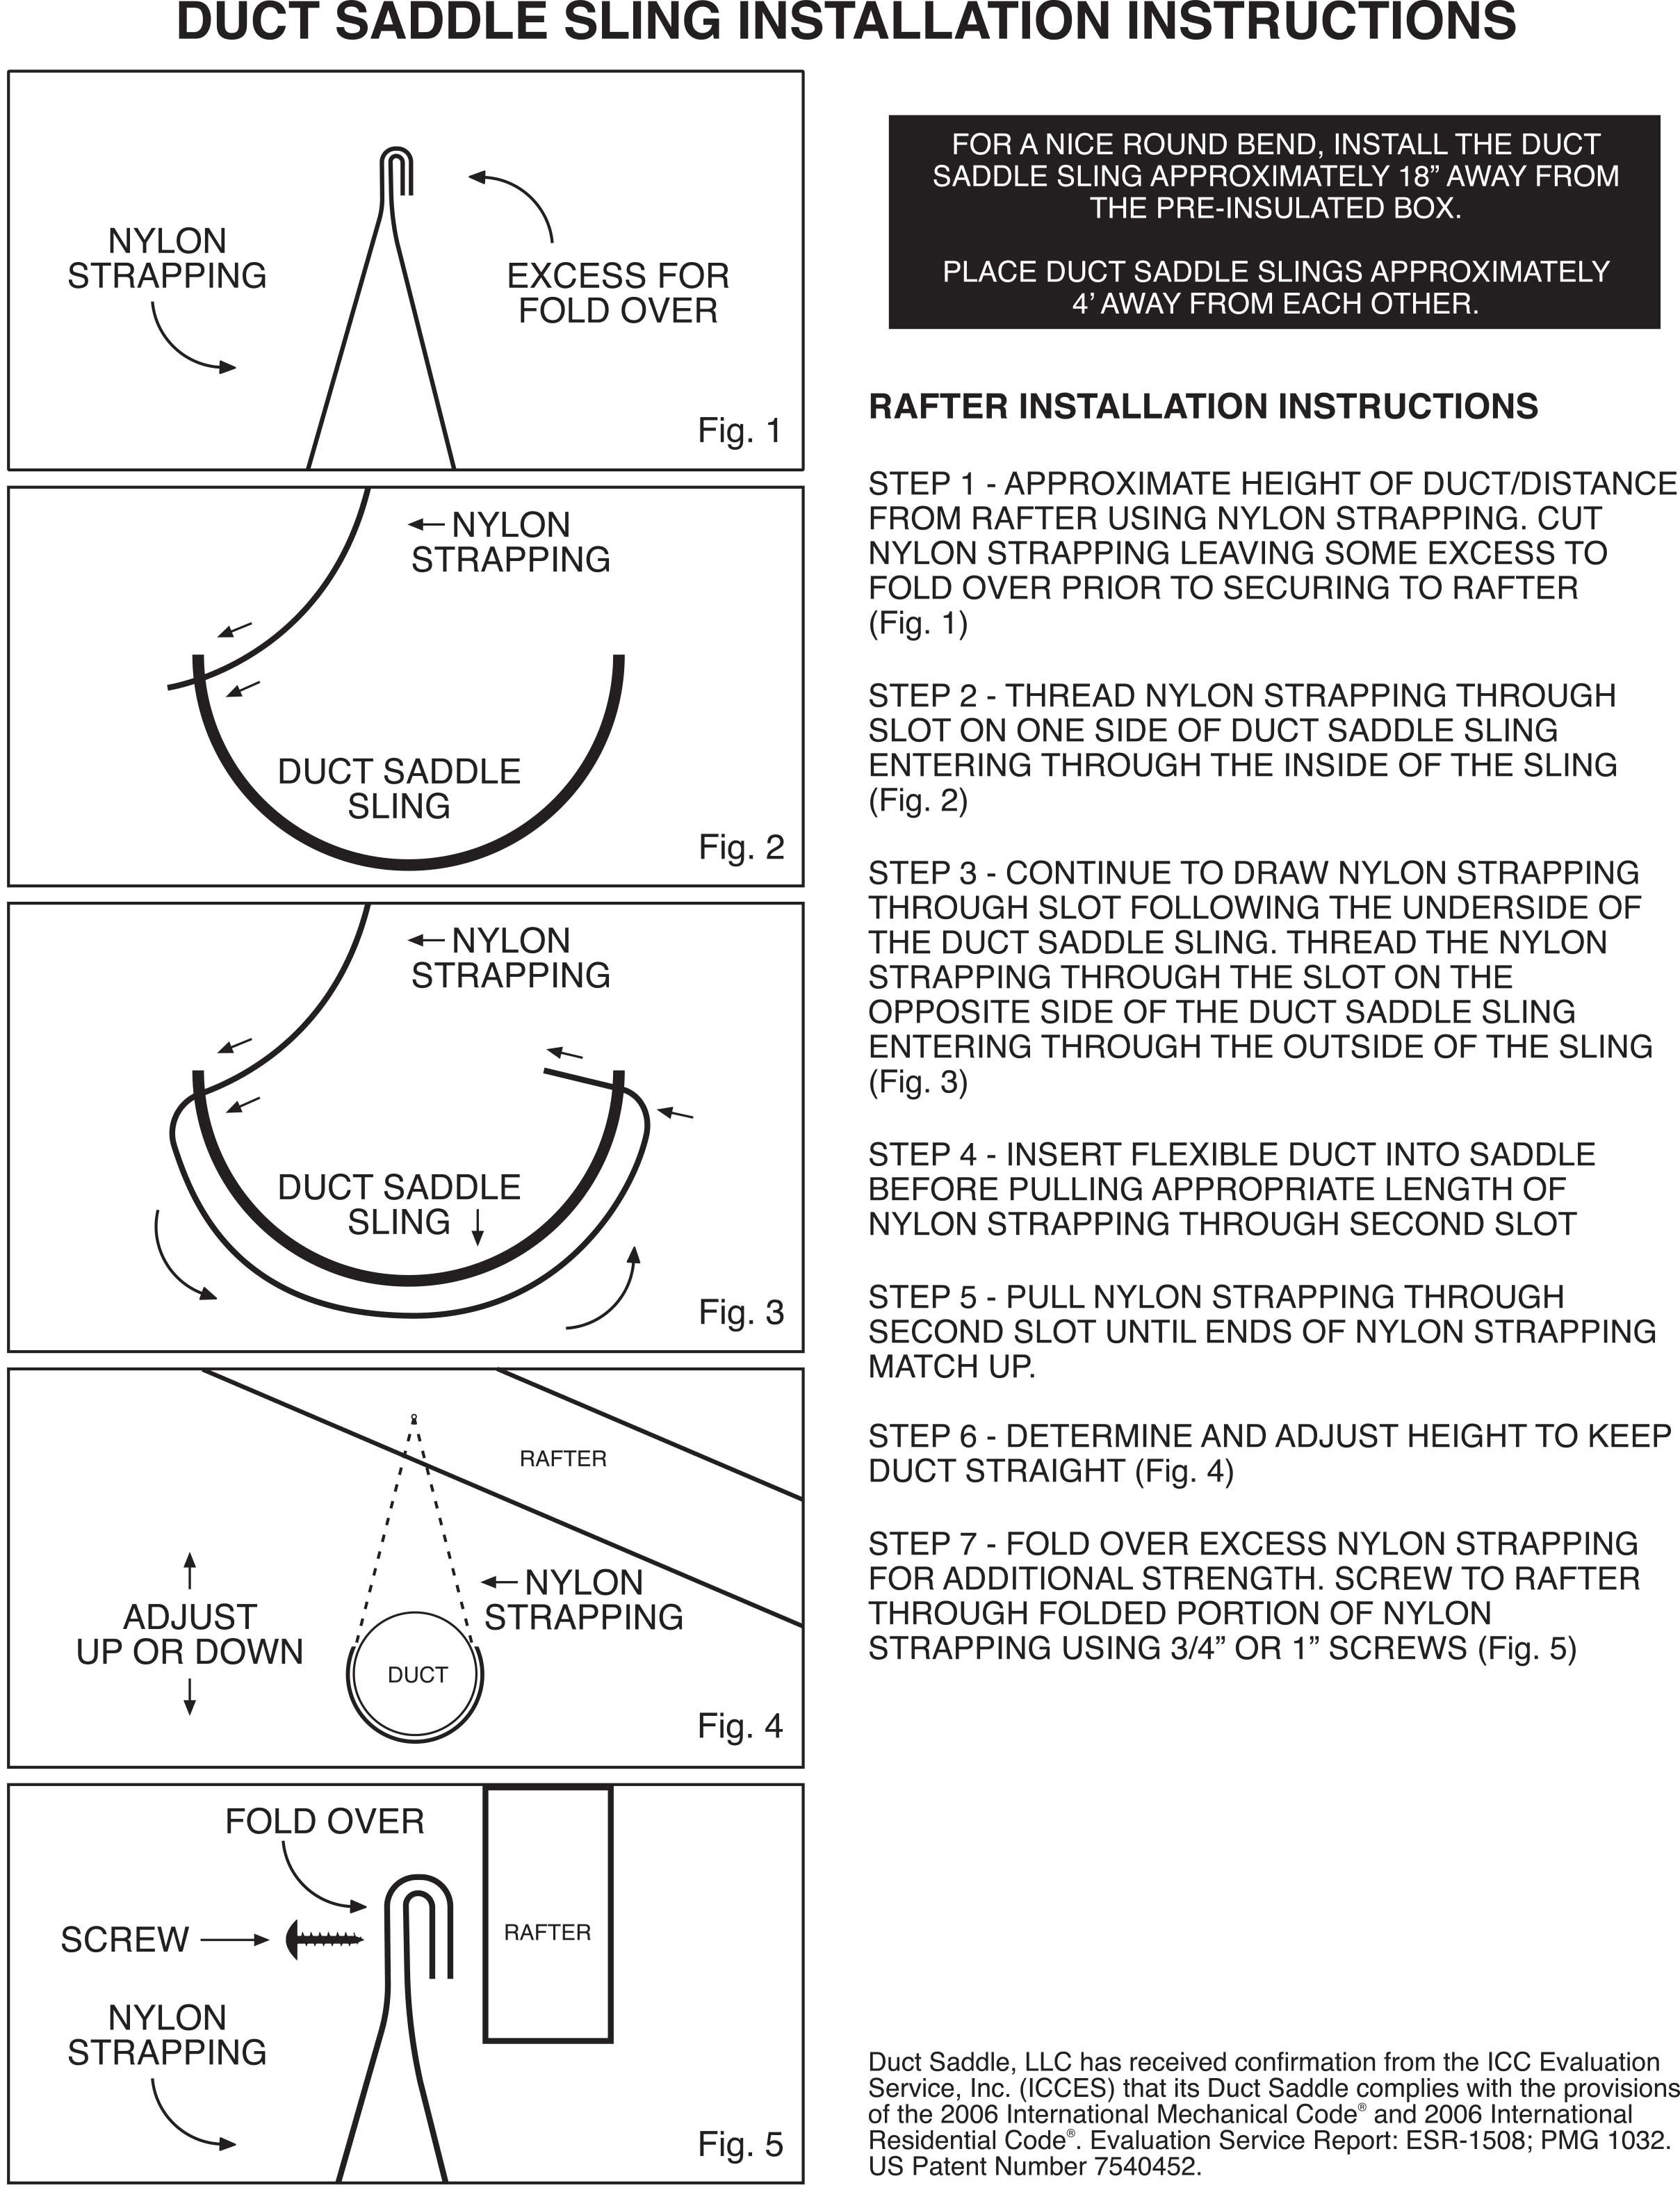 Duct Saddle Sling installation instructions